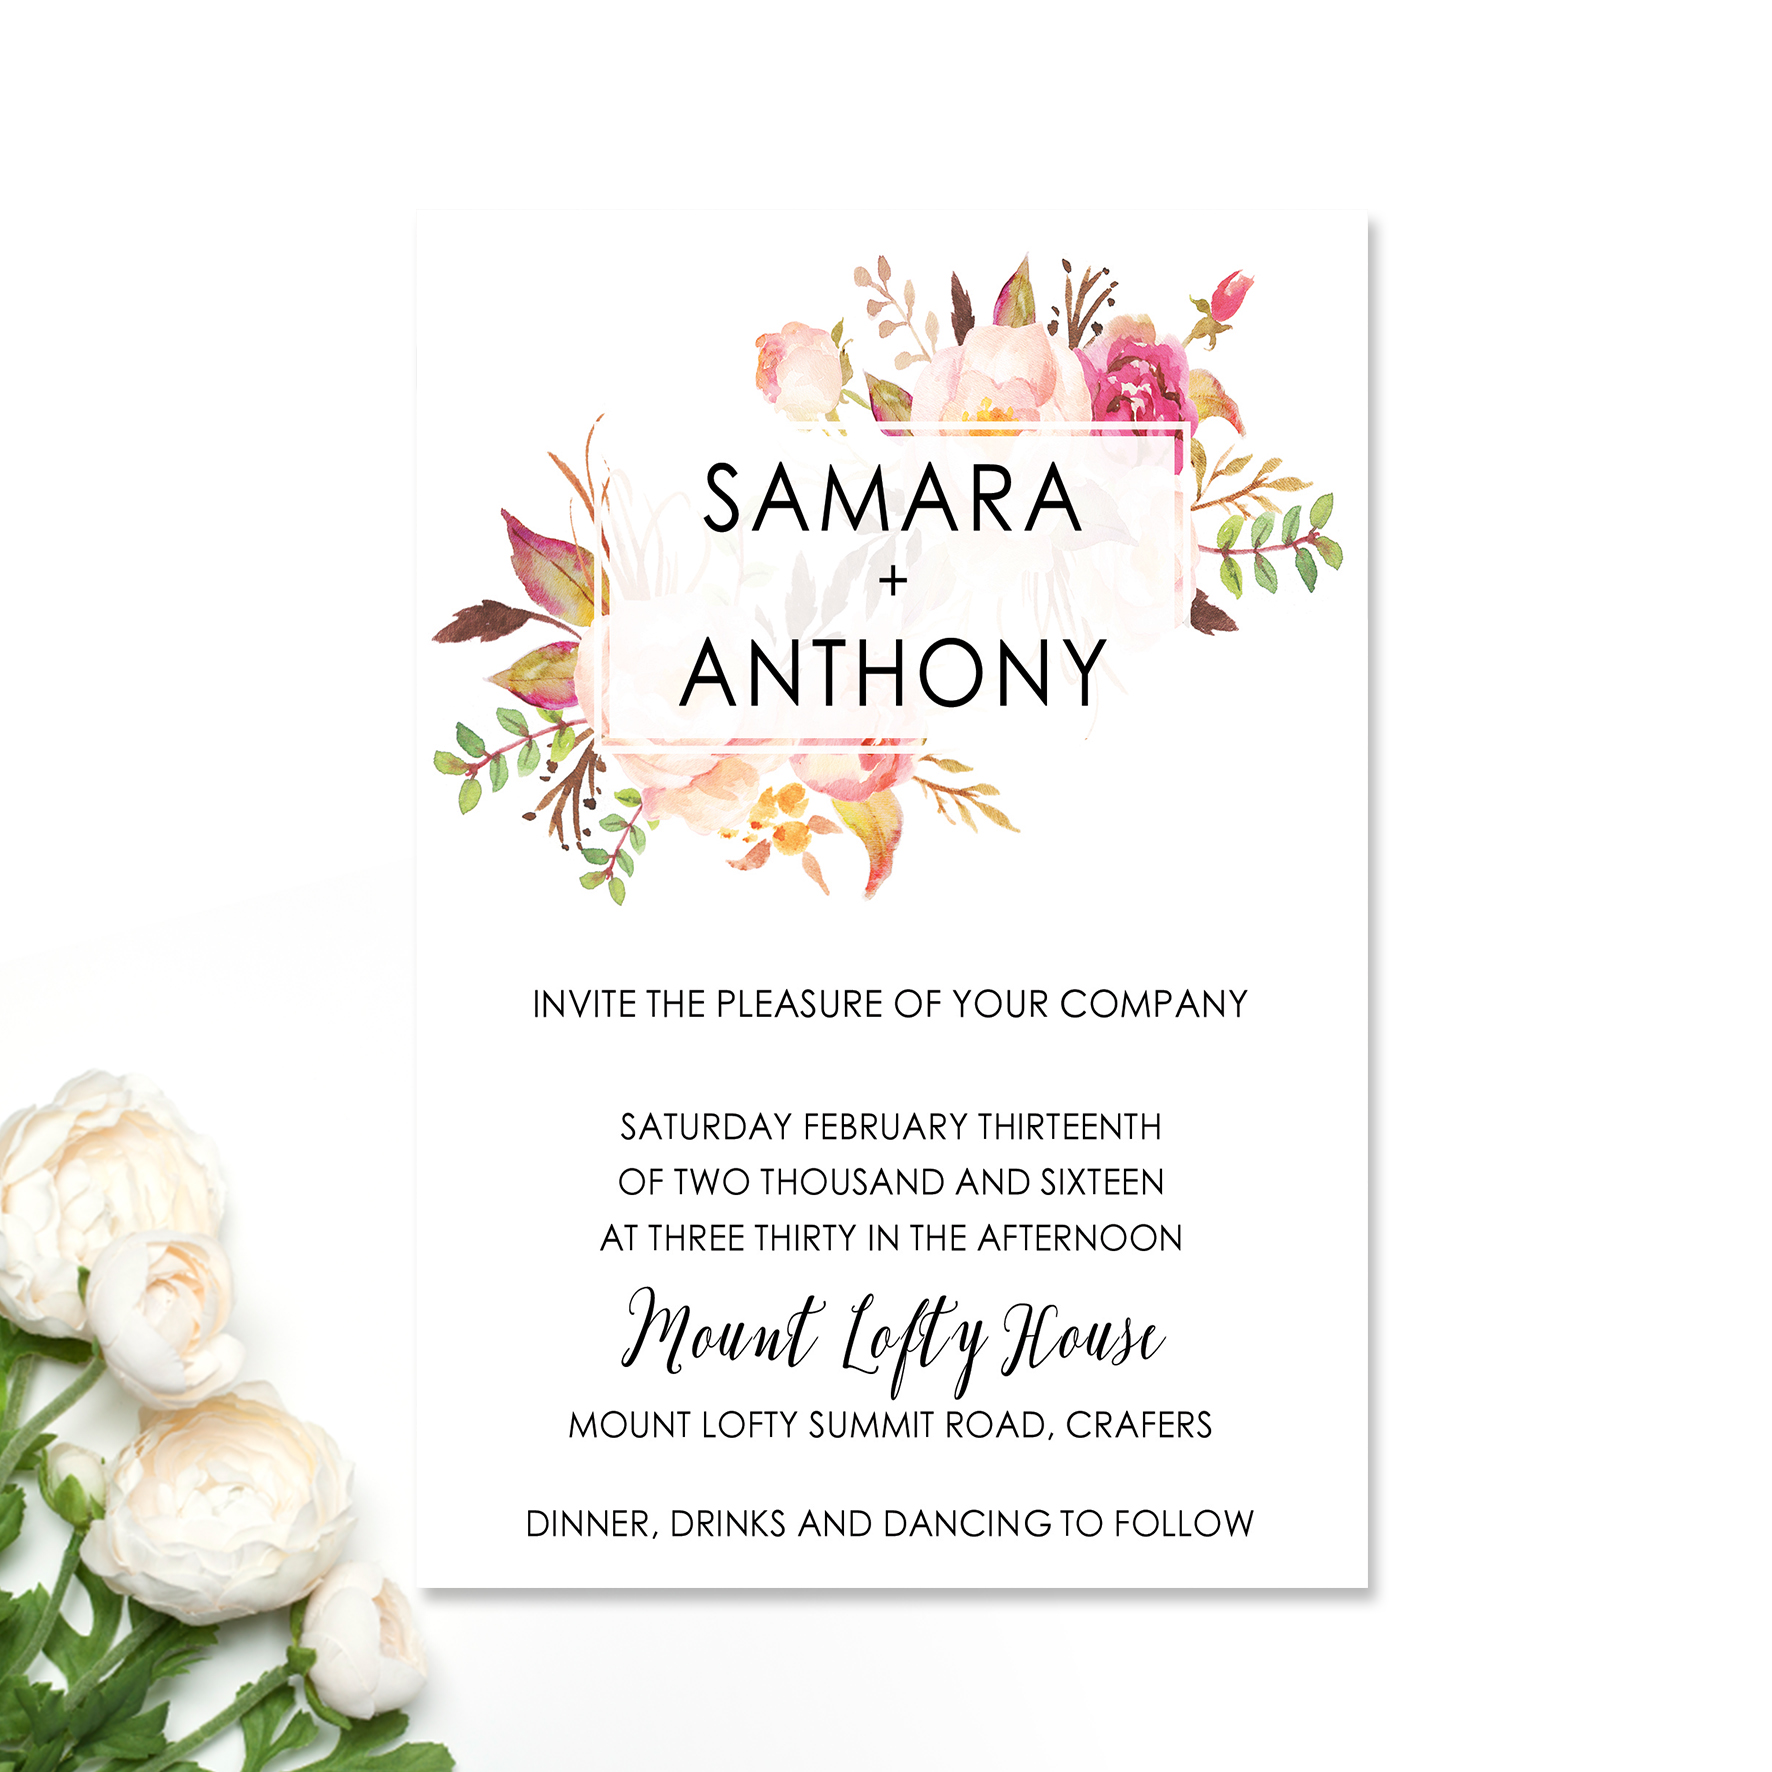 Samara + Anthony Wedding Invitation